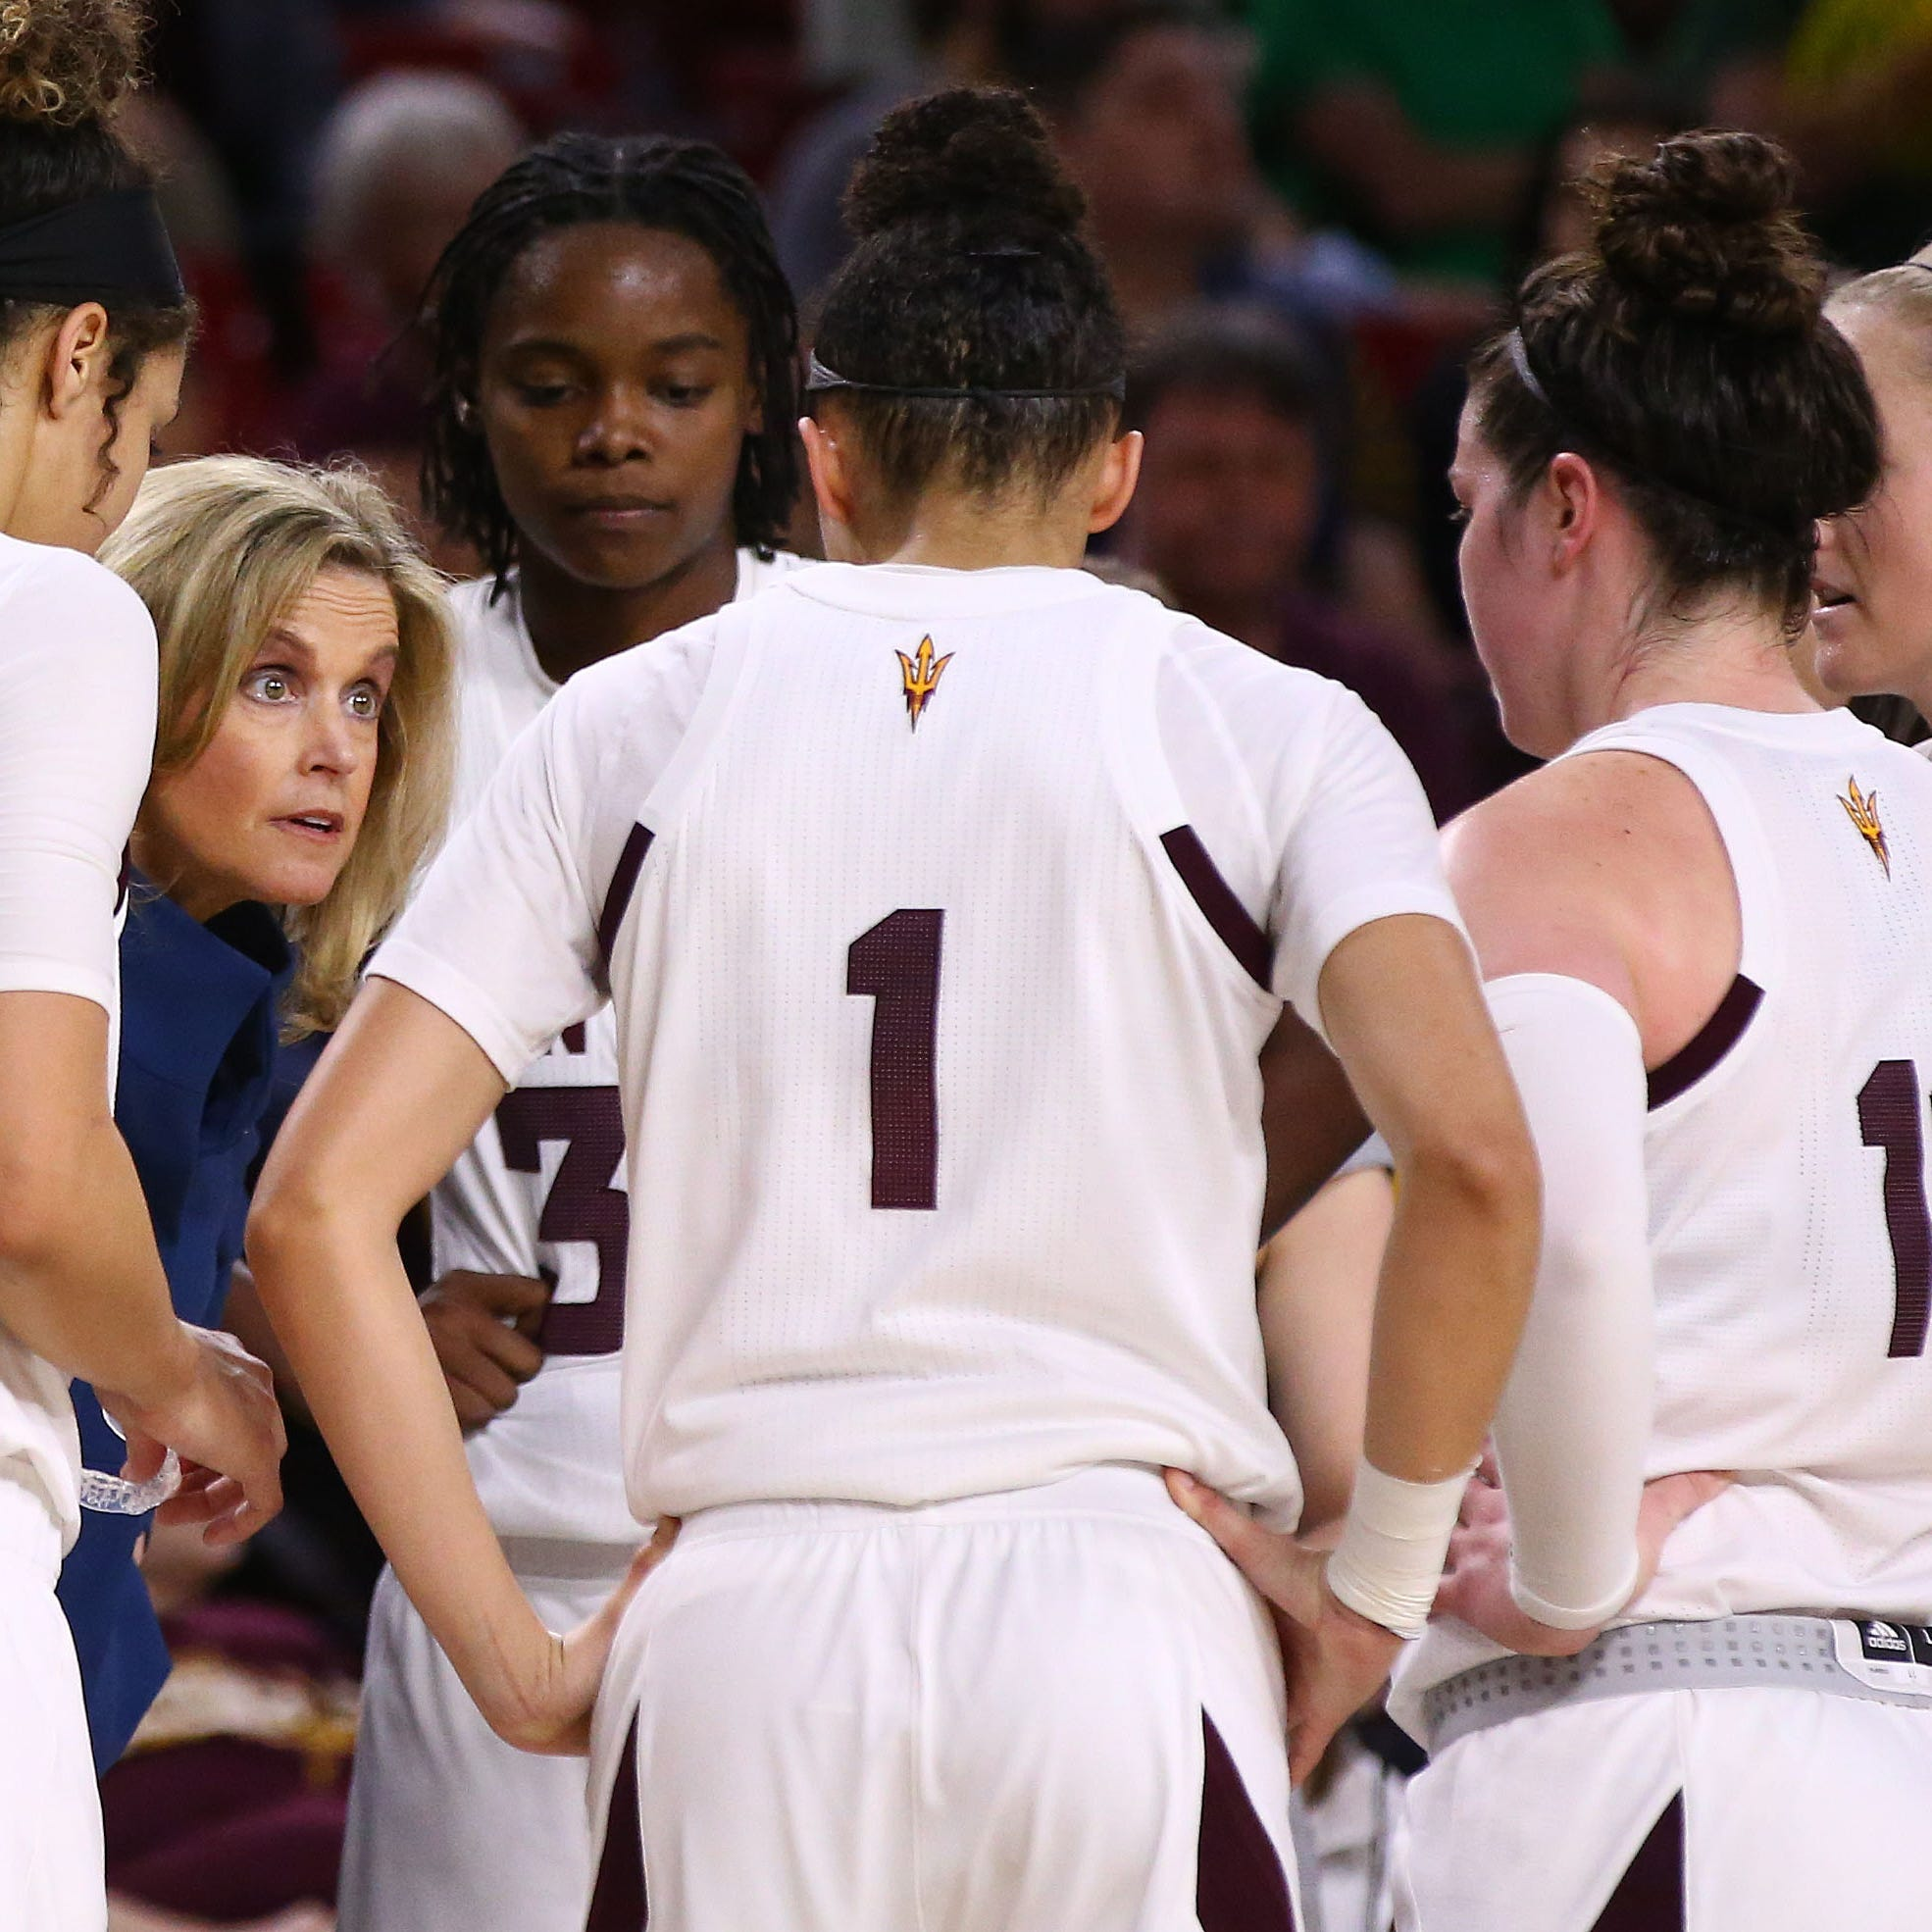 ESPN leaks NCAA Women's Tournament bracket hours before own selection show